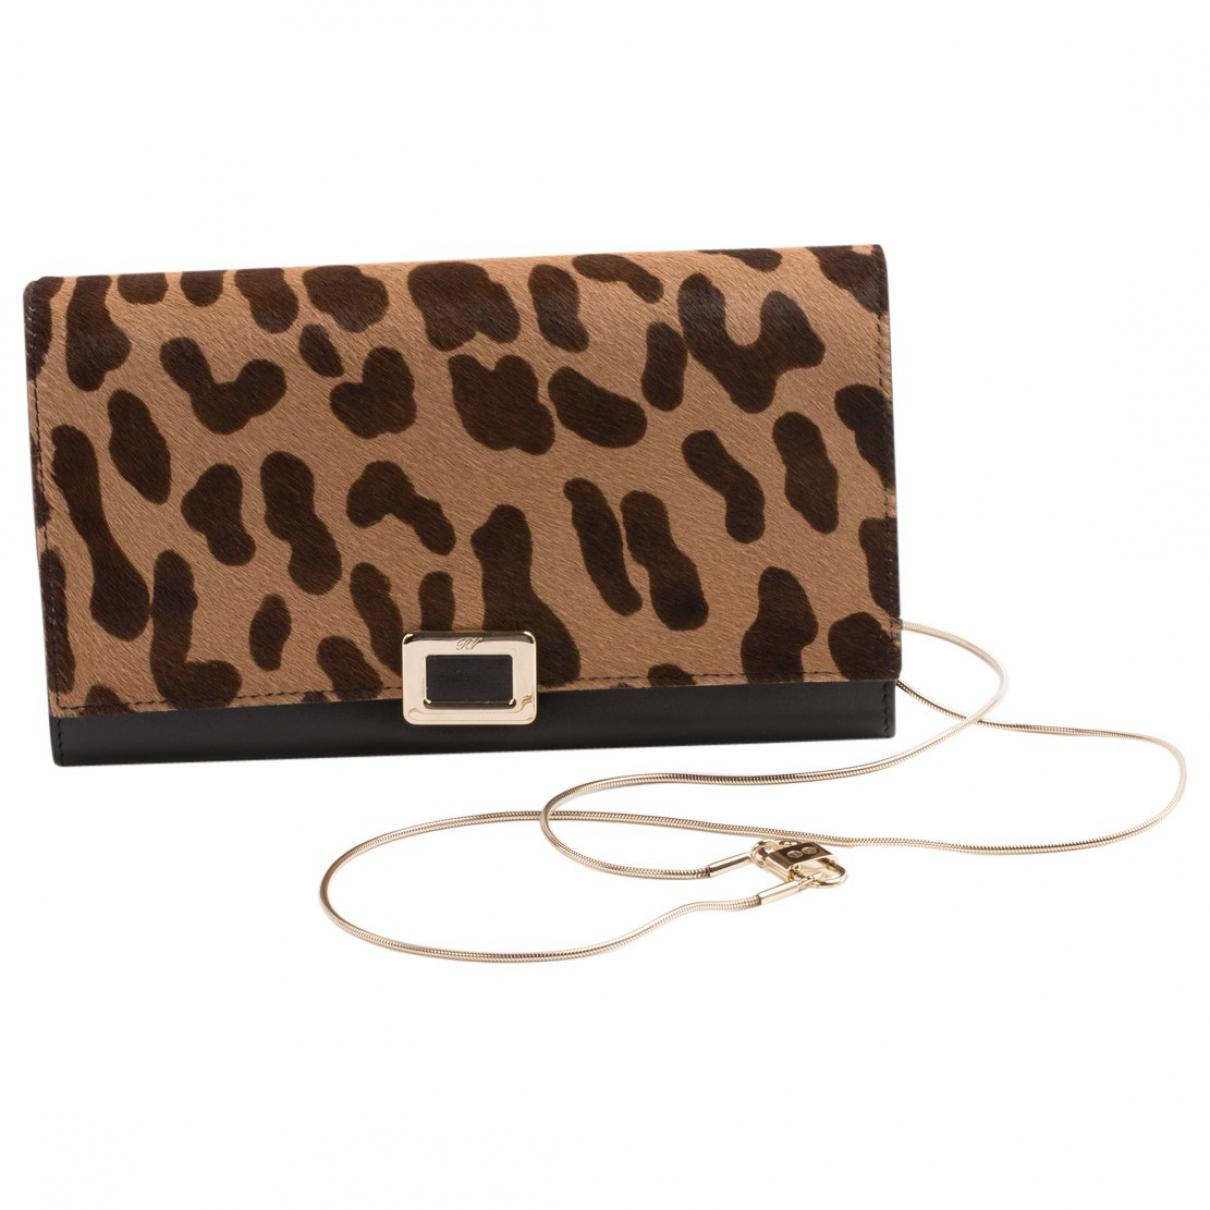 0856339d8831 Lyst - Roger Vivier Pre-owned Brown Pony-style Calfskin Clutch Bag ...